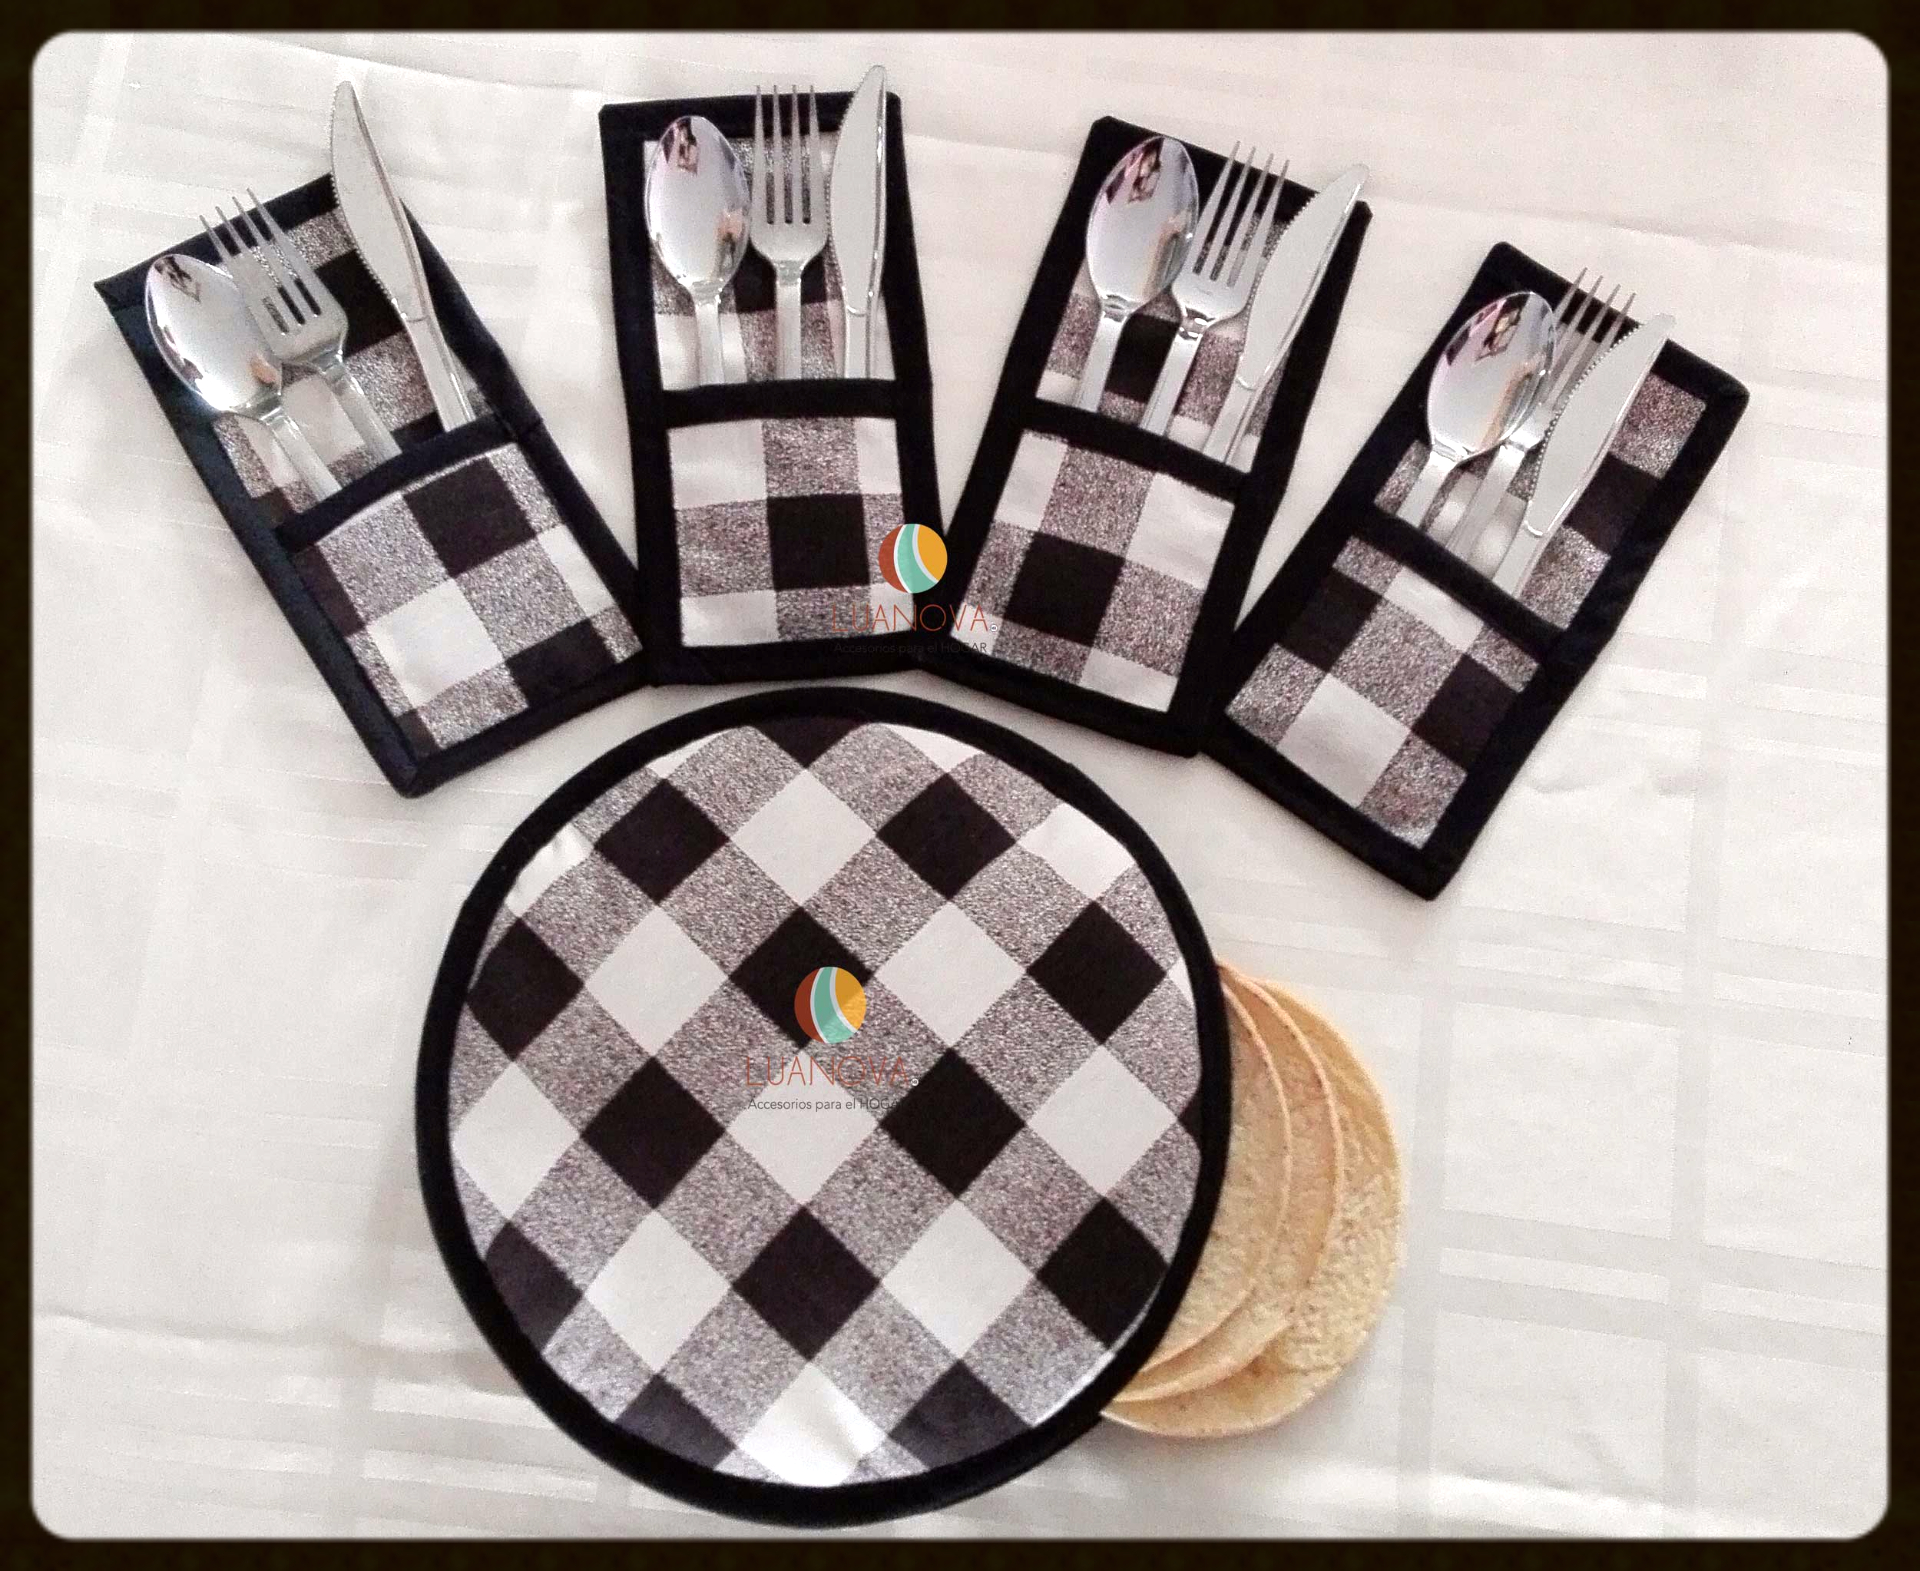 Hermoso y funcional juego de tortillero con 4 portacubiertos  Beautiful and functional set of tortilla warmer + 4 cutlery rest